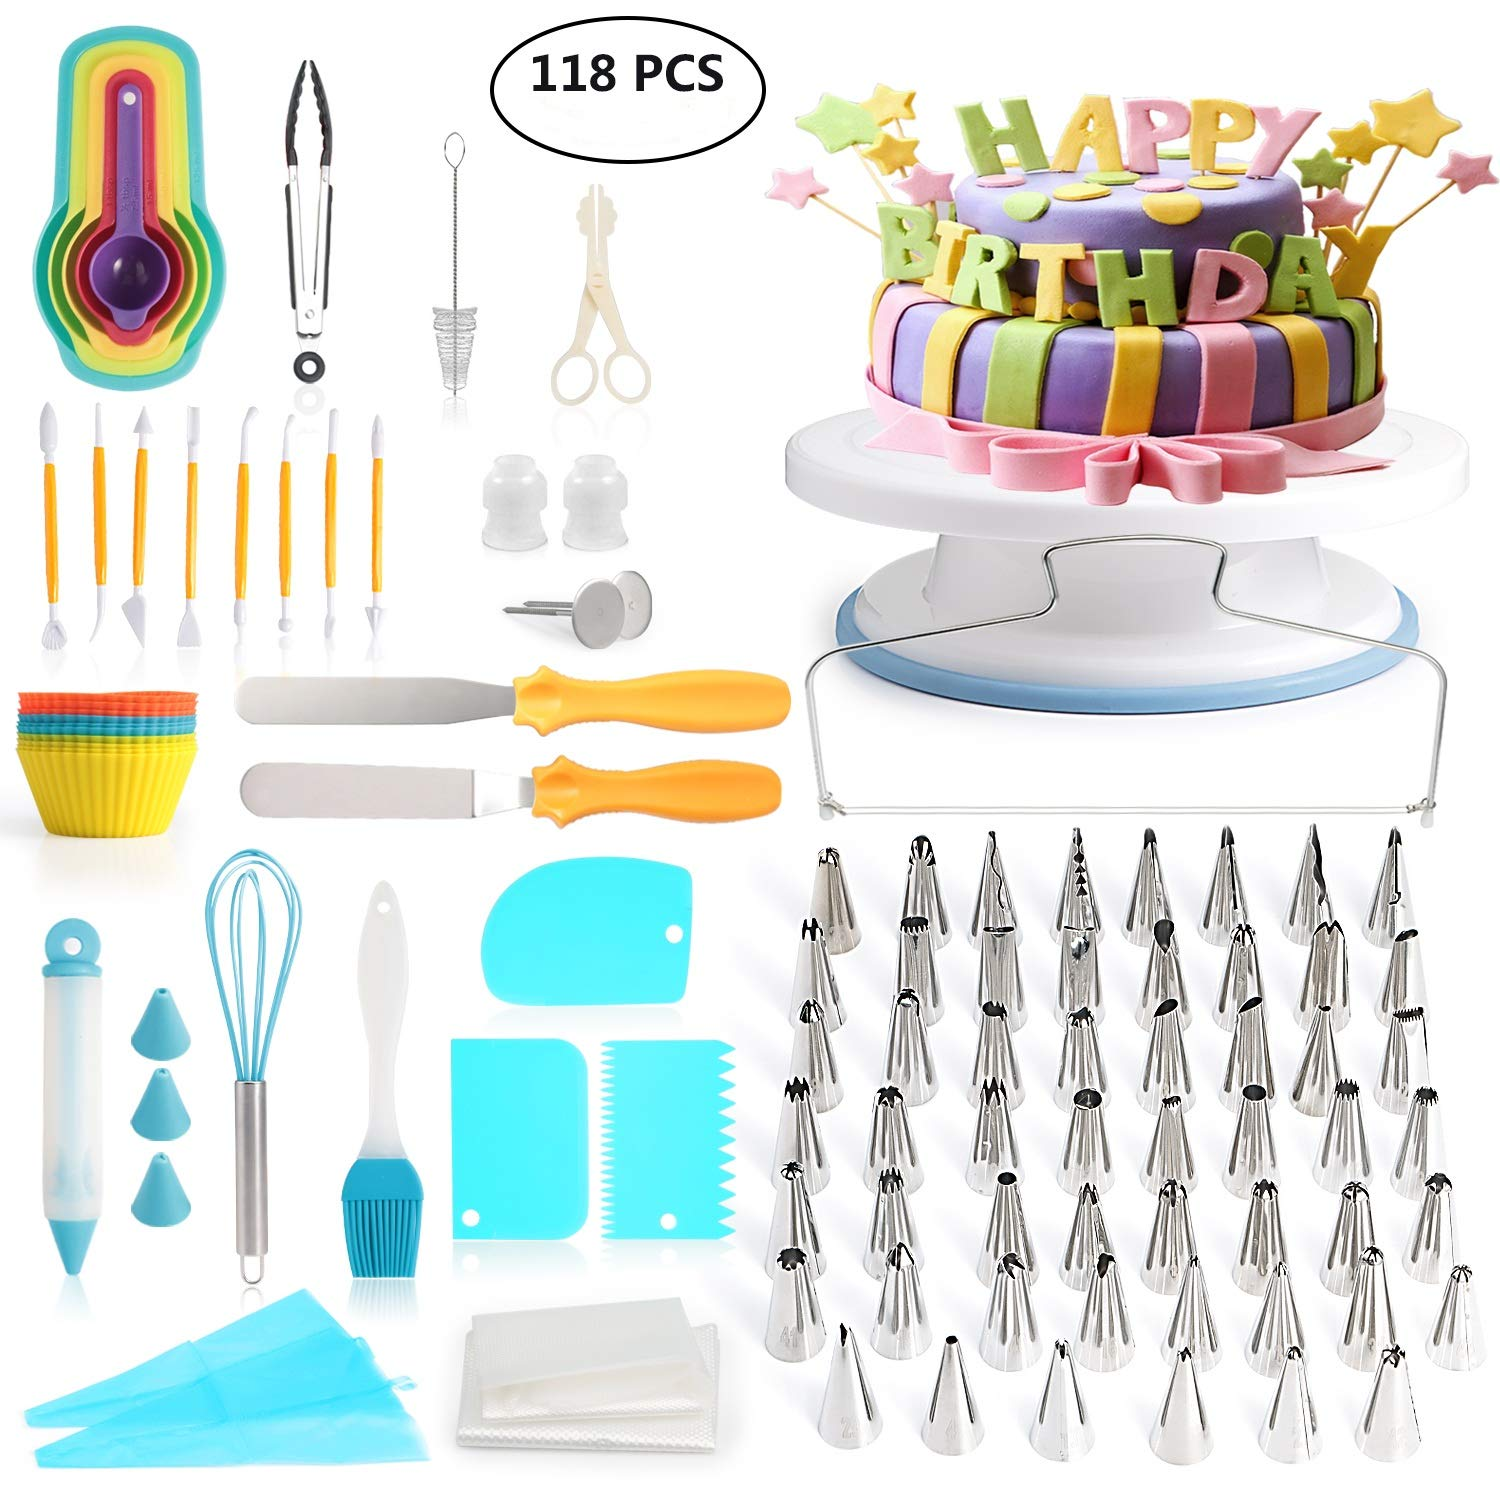 118 pcs Cake Decorating Supplies Kit Cake Baking Tools Cupcake Icing Tools Pastry Tools Cake Spinner Stand Cake Turntable 55 Cake Decorating Stainless Steel Tips for Kid Teen Beginner Birthday Party by JINDILONG